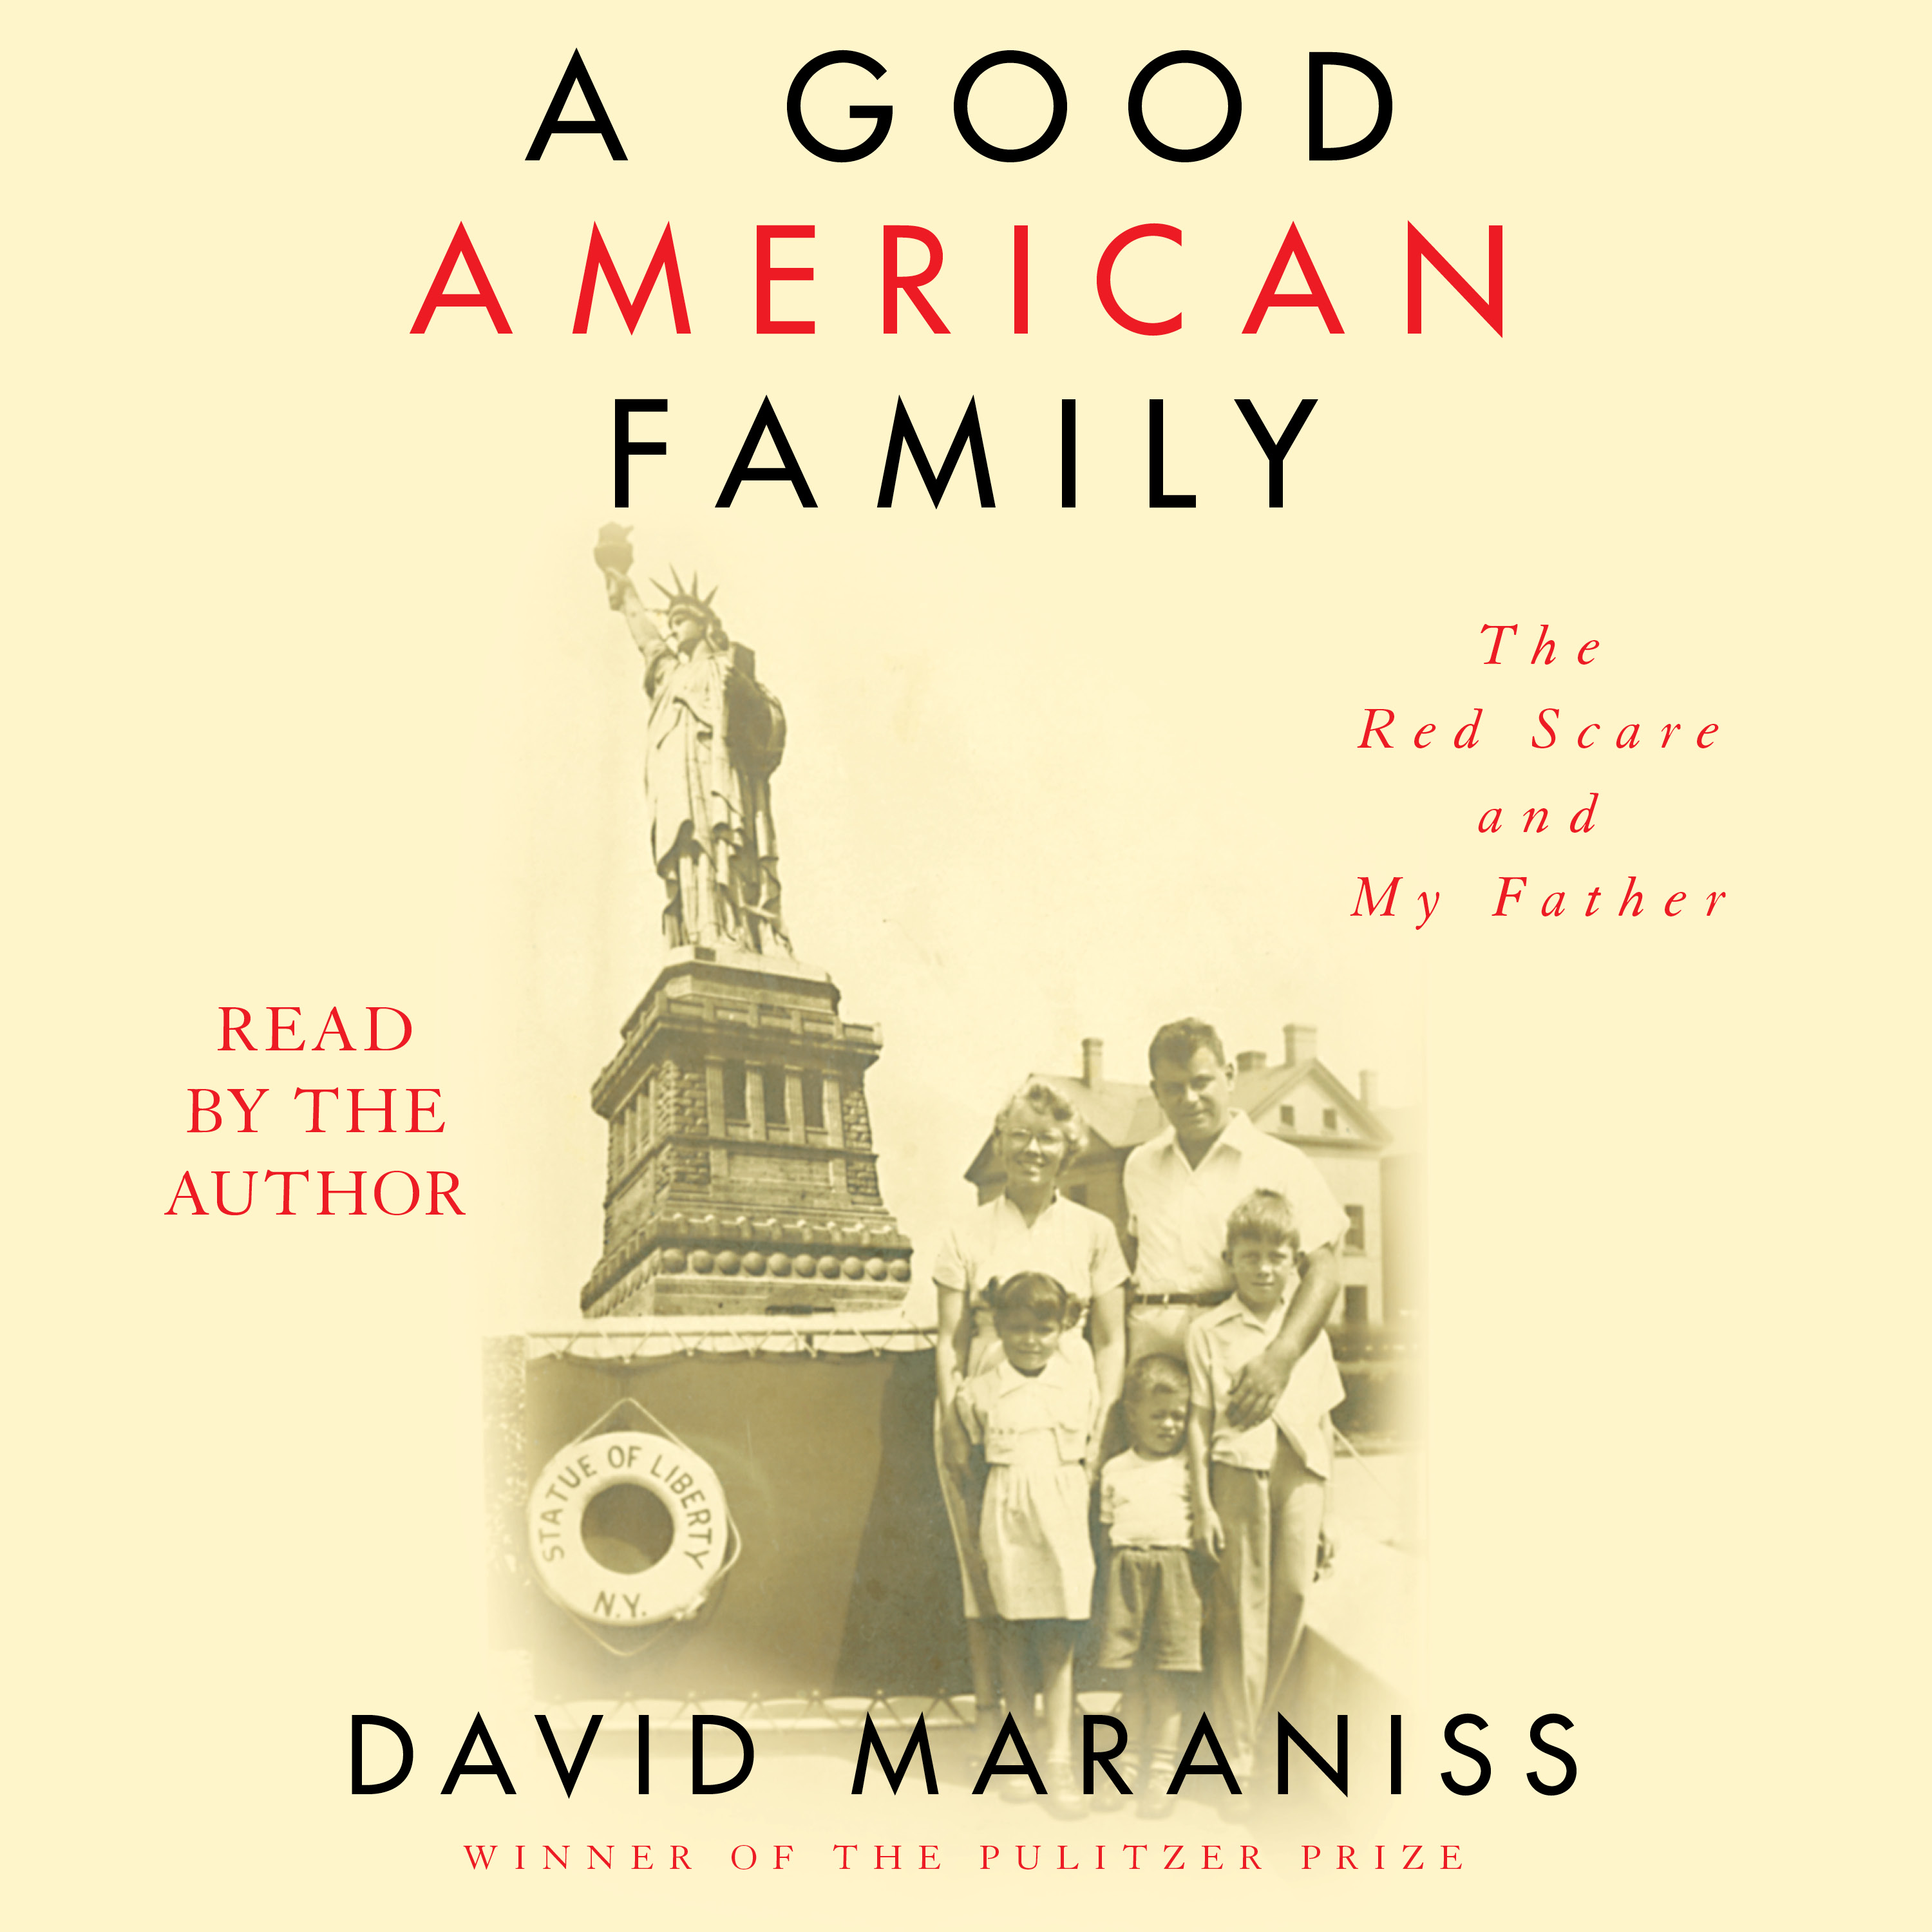 A Good American Family Audiobook by David Maraniss | Official